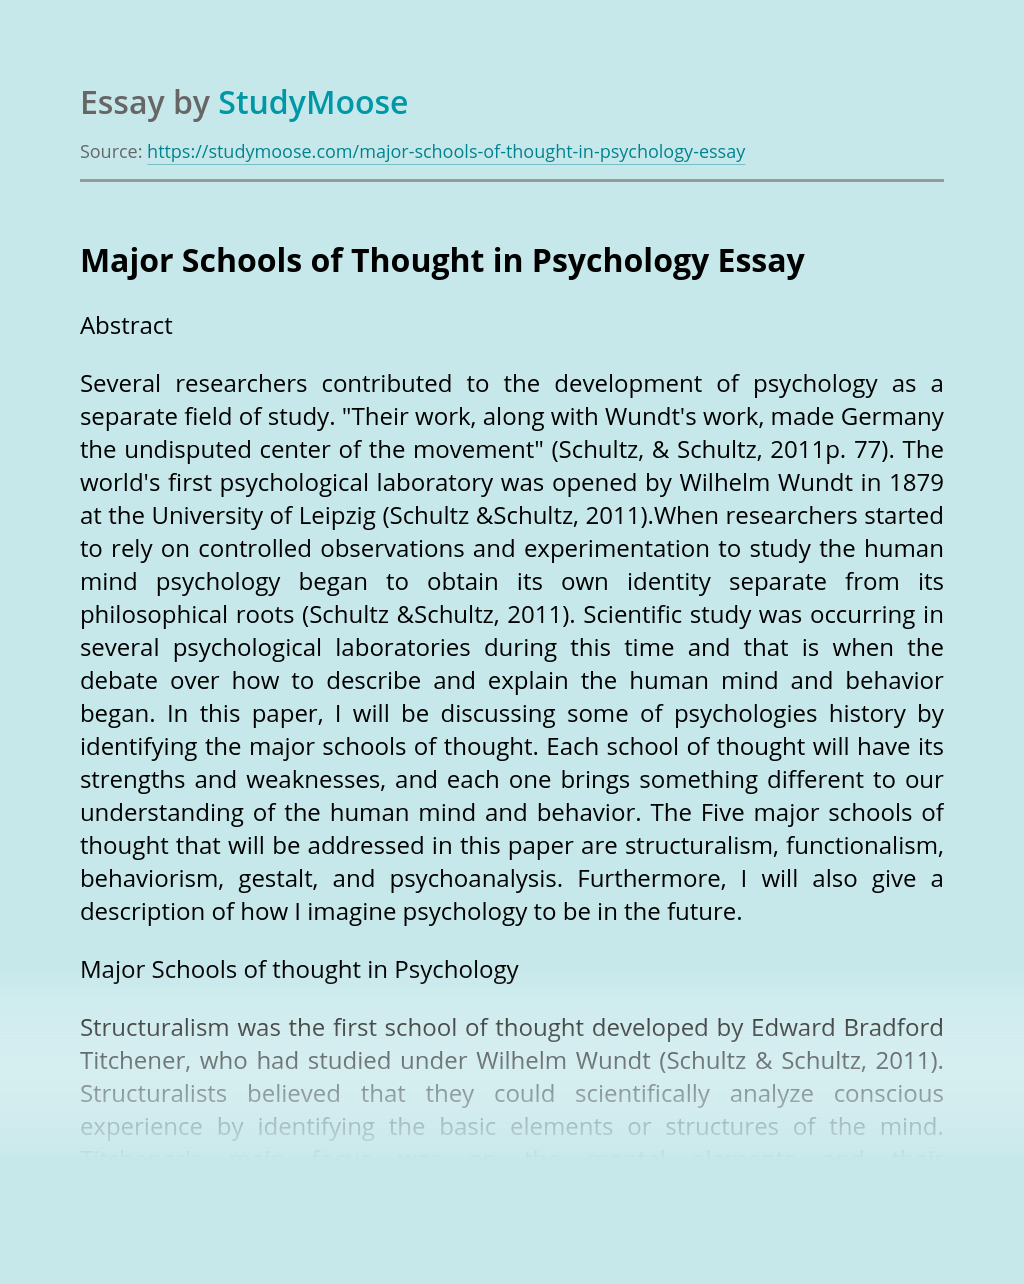 Major Schools of Thought in Psychology